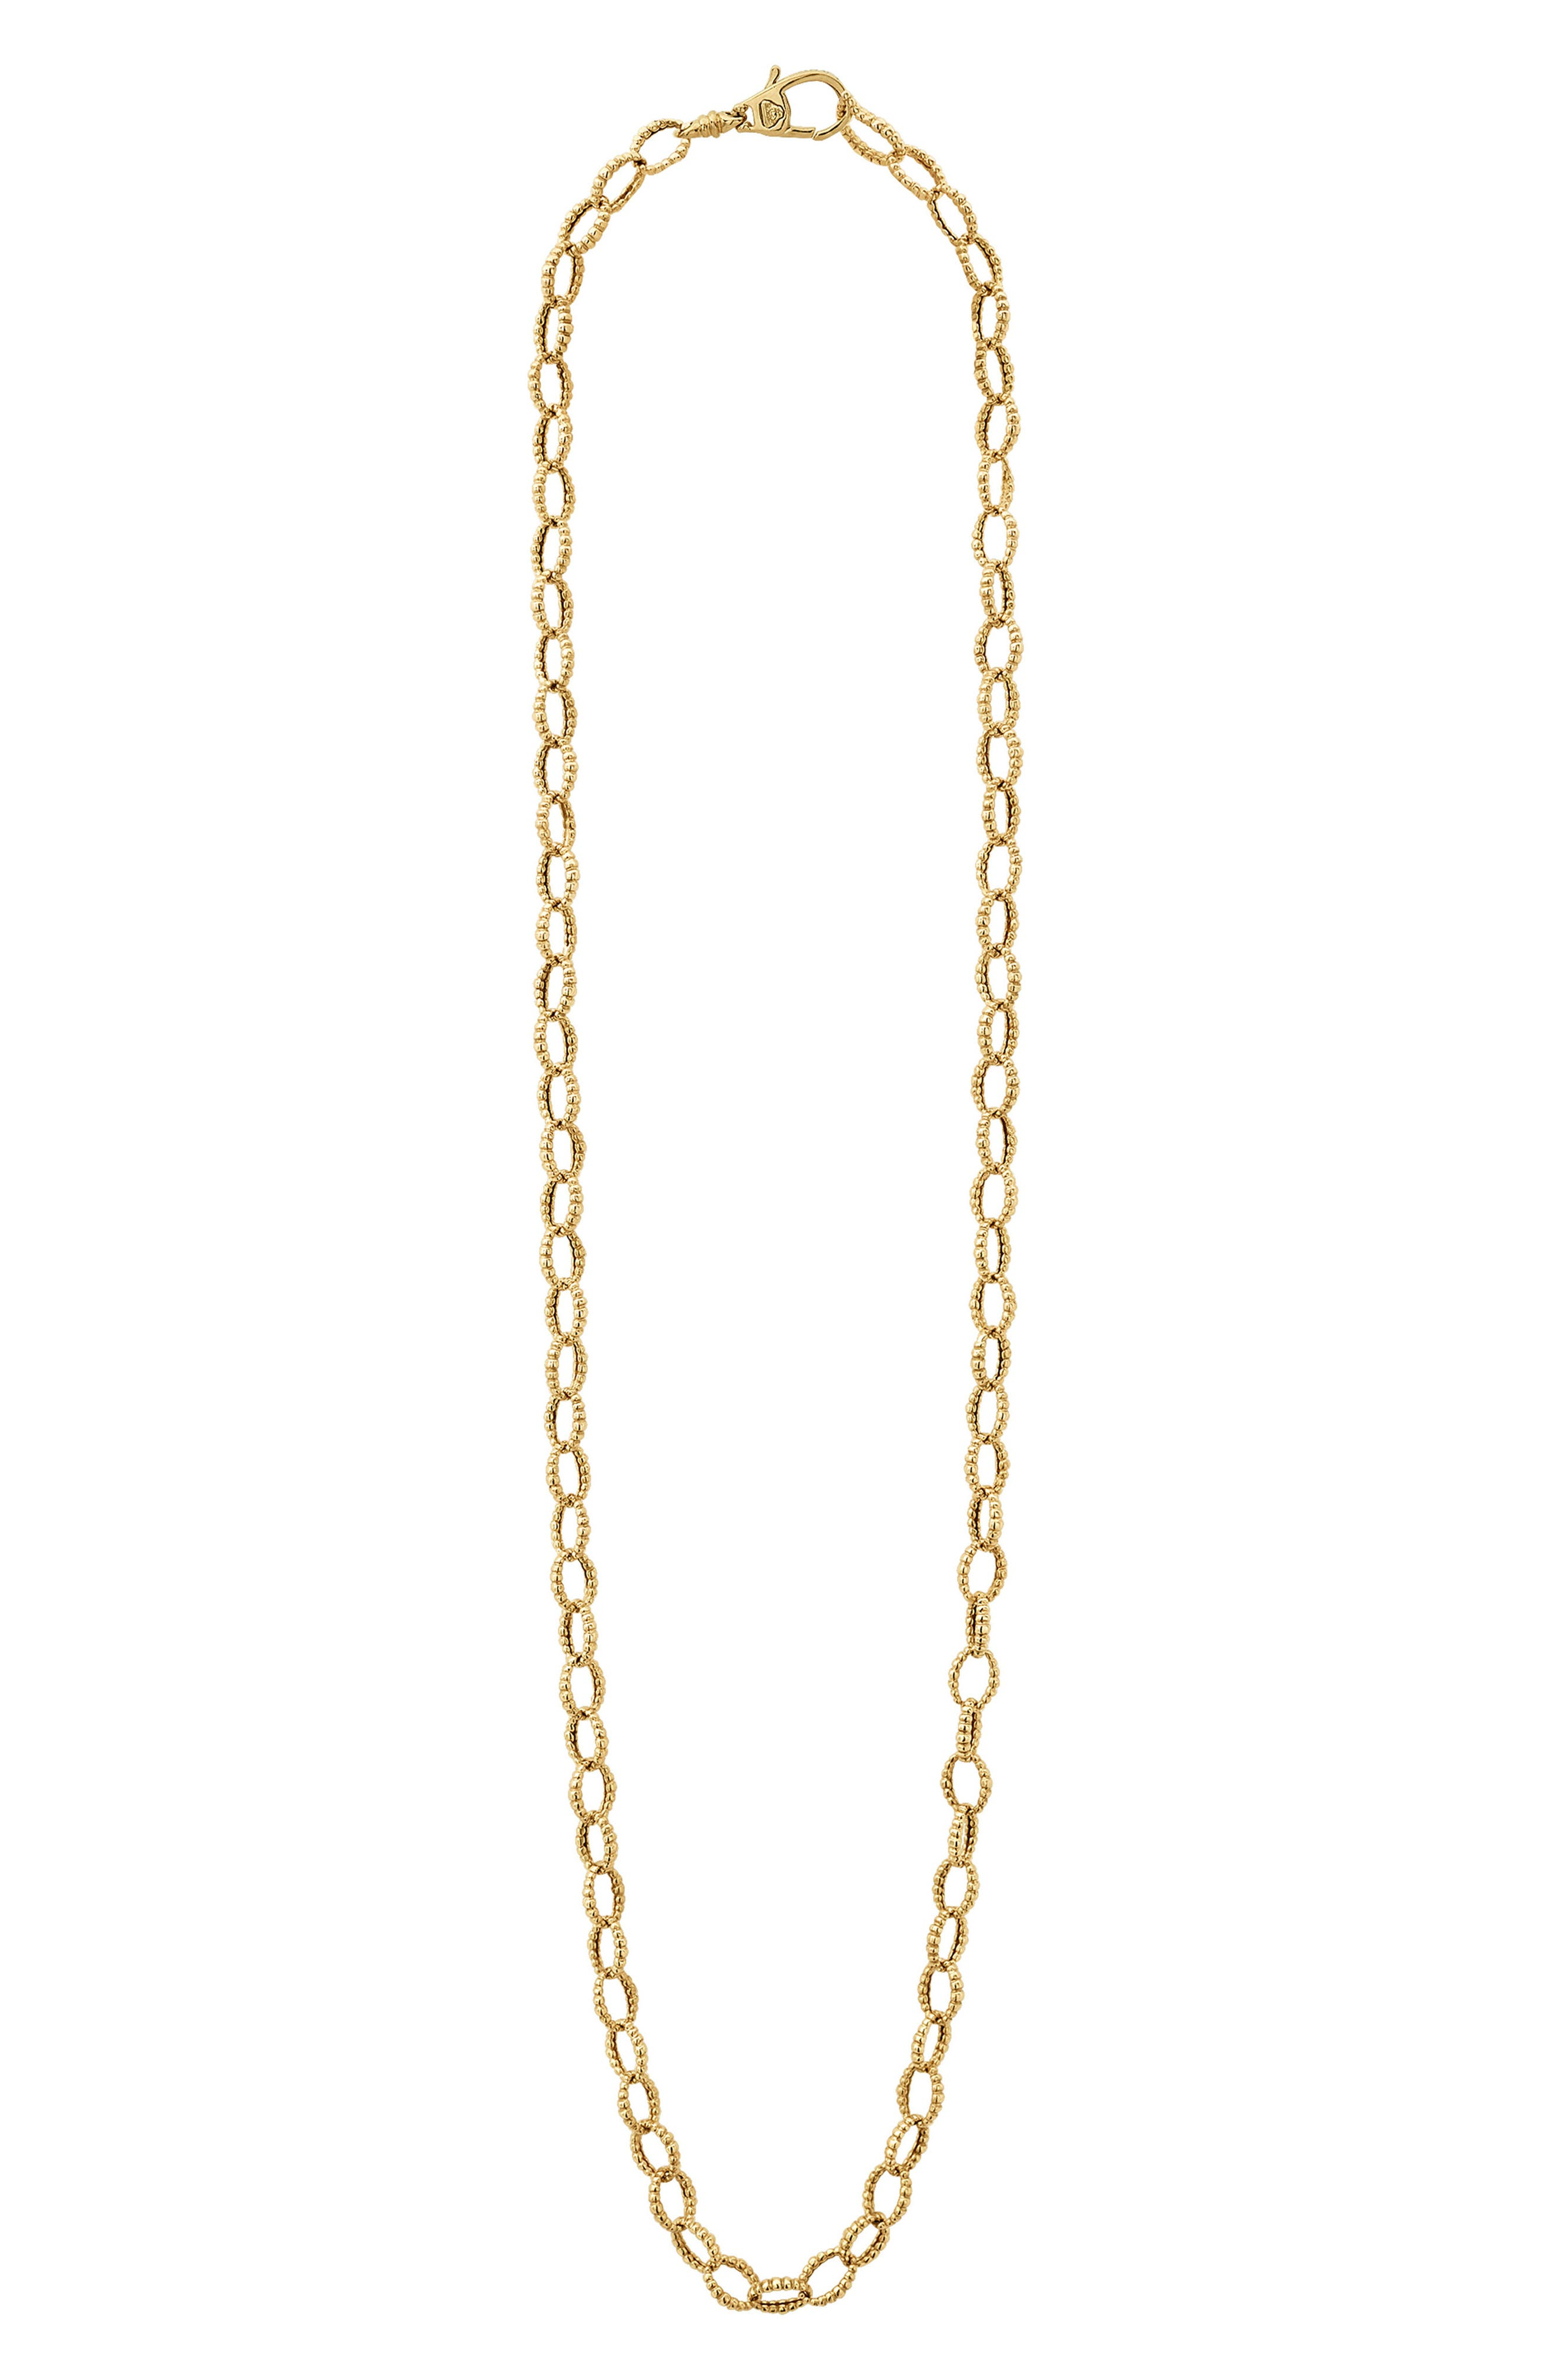 Caviar Gold Fluted Oval Link Necklace,                             Main thumbnail 1, color,                             Gold